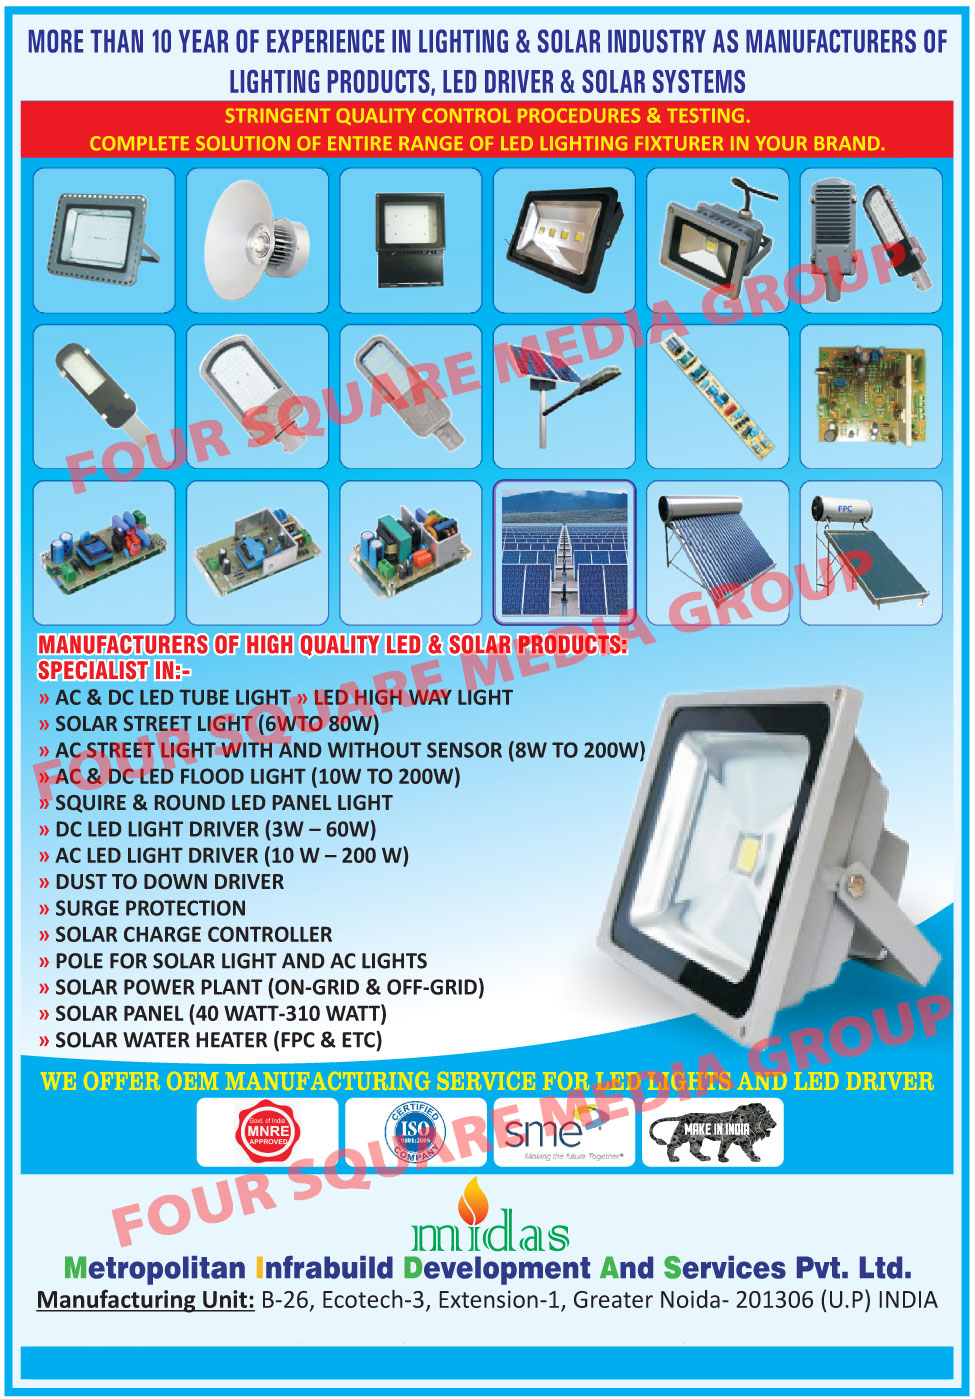 Led Lights, AC Led Tube Lights, DC Led Tube Lights, Led High Way Lights, Solar Street Lights, AC Street Lights, AC Led Flood Lights, DC Led Flood Lights, Led Panel Lights, Square Led Panel Lights, Round Led Panel Lights, DC Led Light Drivers, AC Led Light Drivers, Dust To Down Drivers, Solar Charge Controllers, Solar Light Poles, AC Light Poles, Solar Power Plant, Solar Panels, Solar Water Heaters, AC Led Light Surge Protection, Led Drivers, Led Light Fixtures, Solar Products